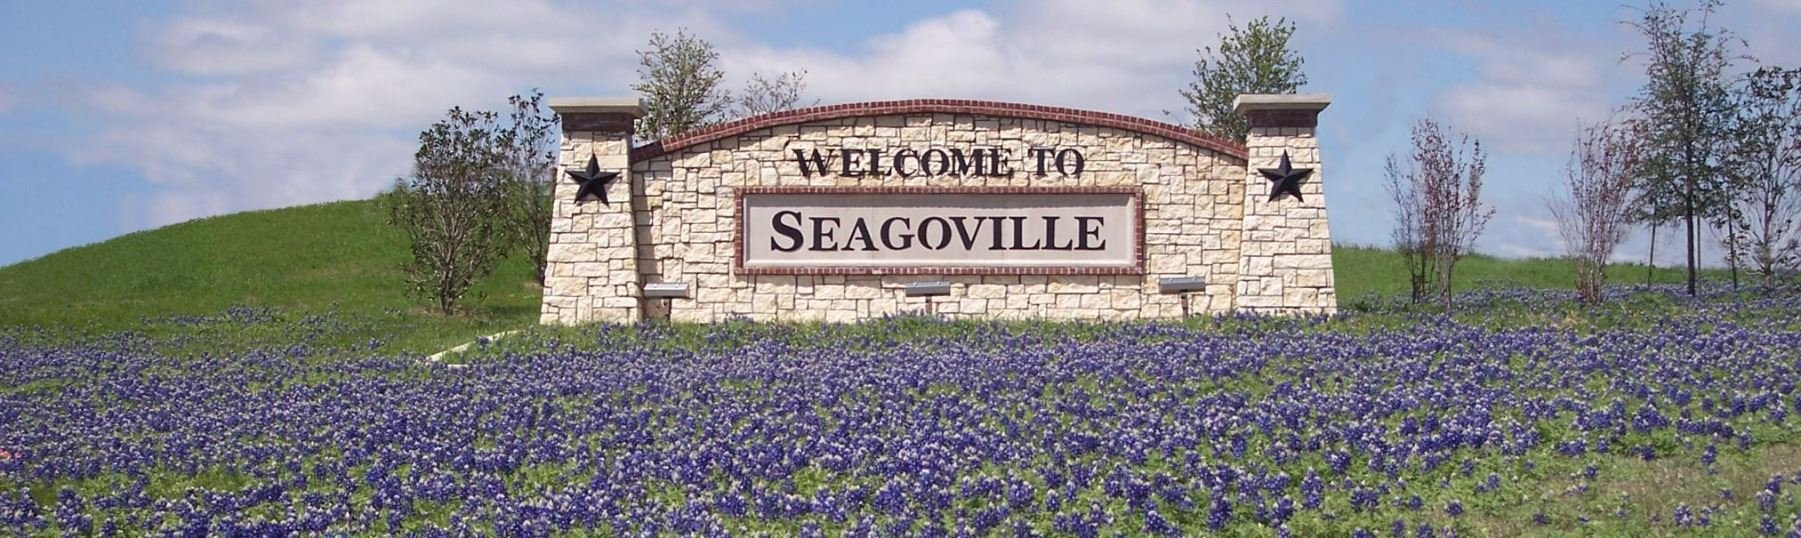 💛 Love Investors 💛 We Buy Houses - Sell My House Fast Seagoville TX